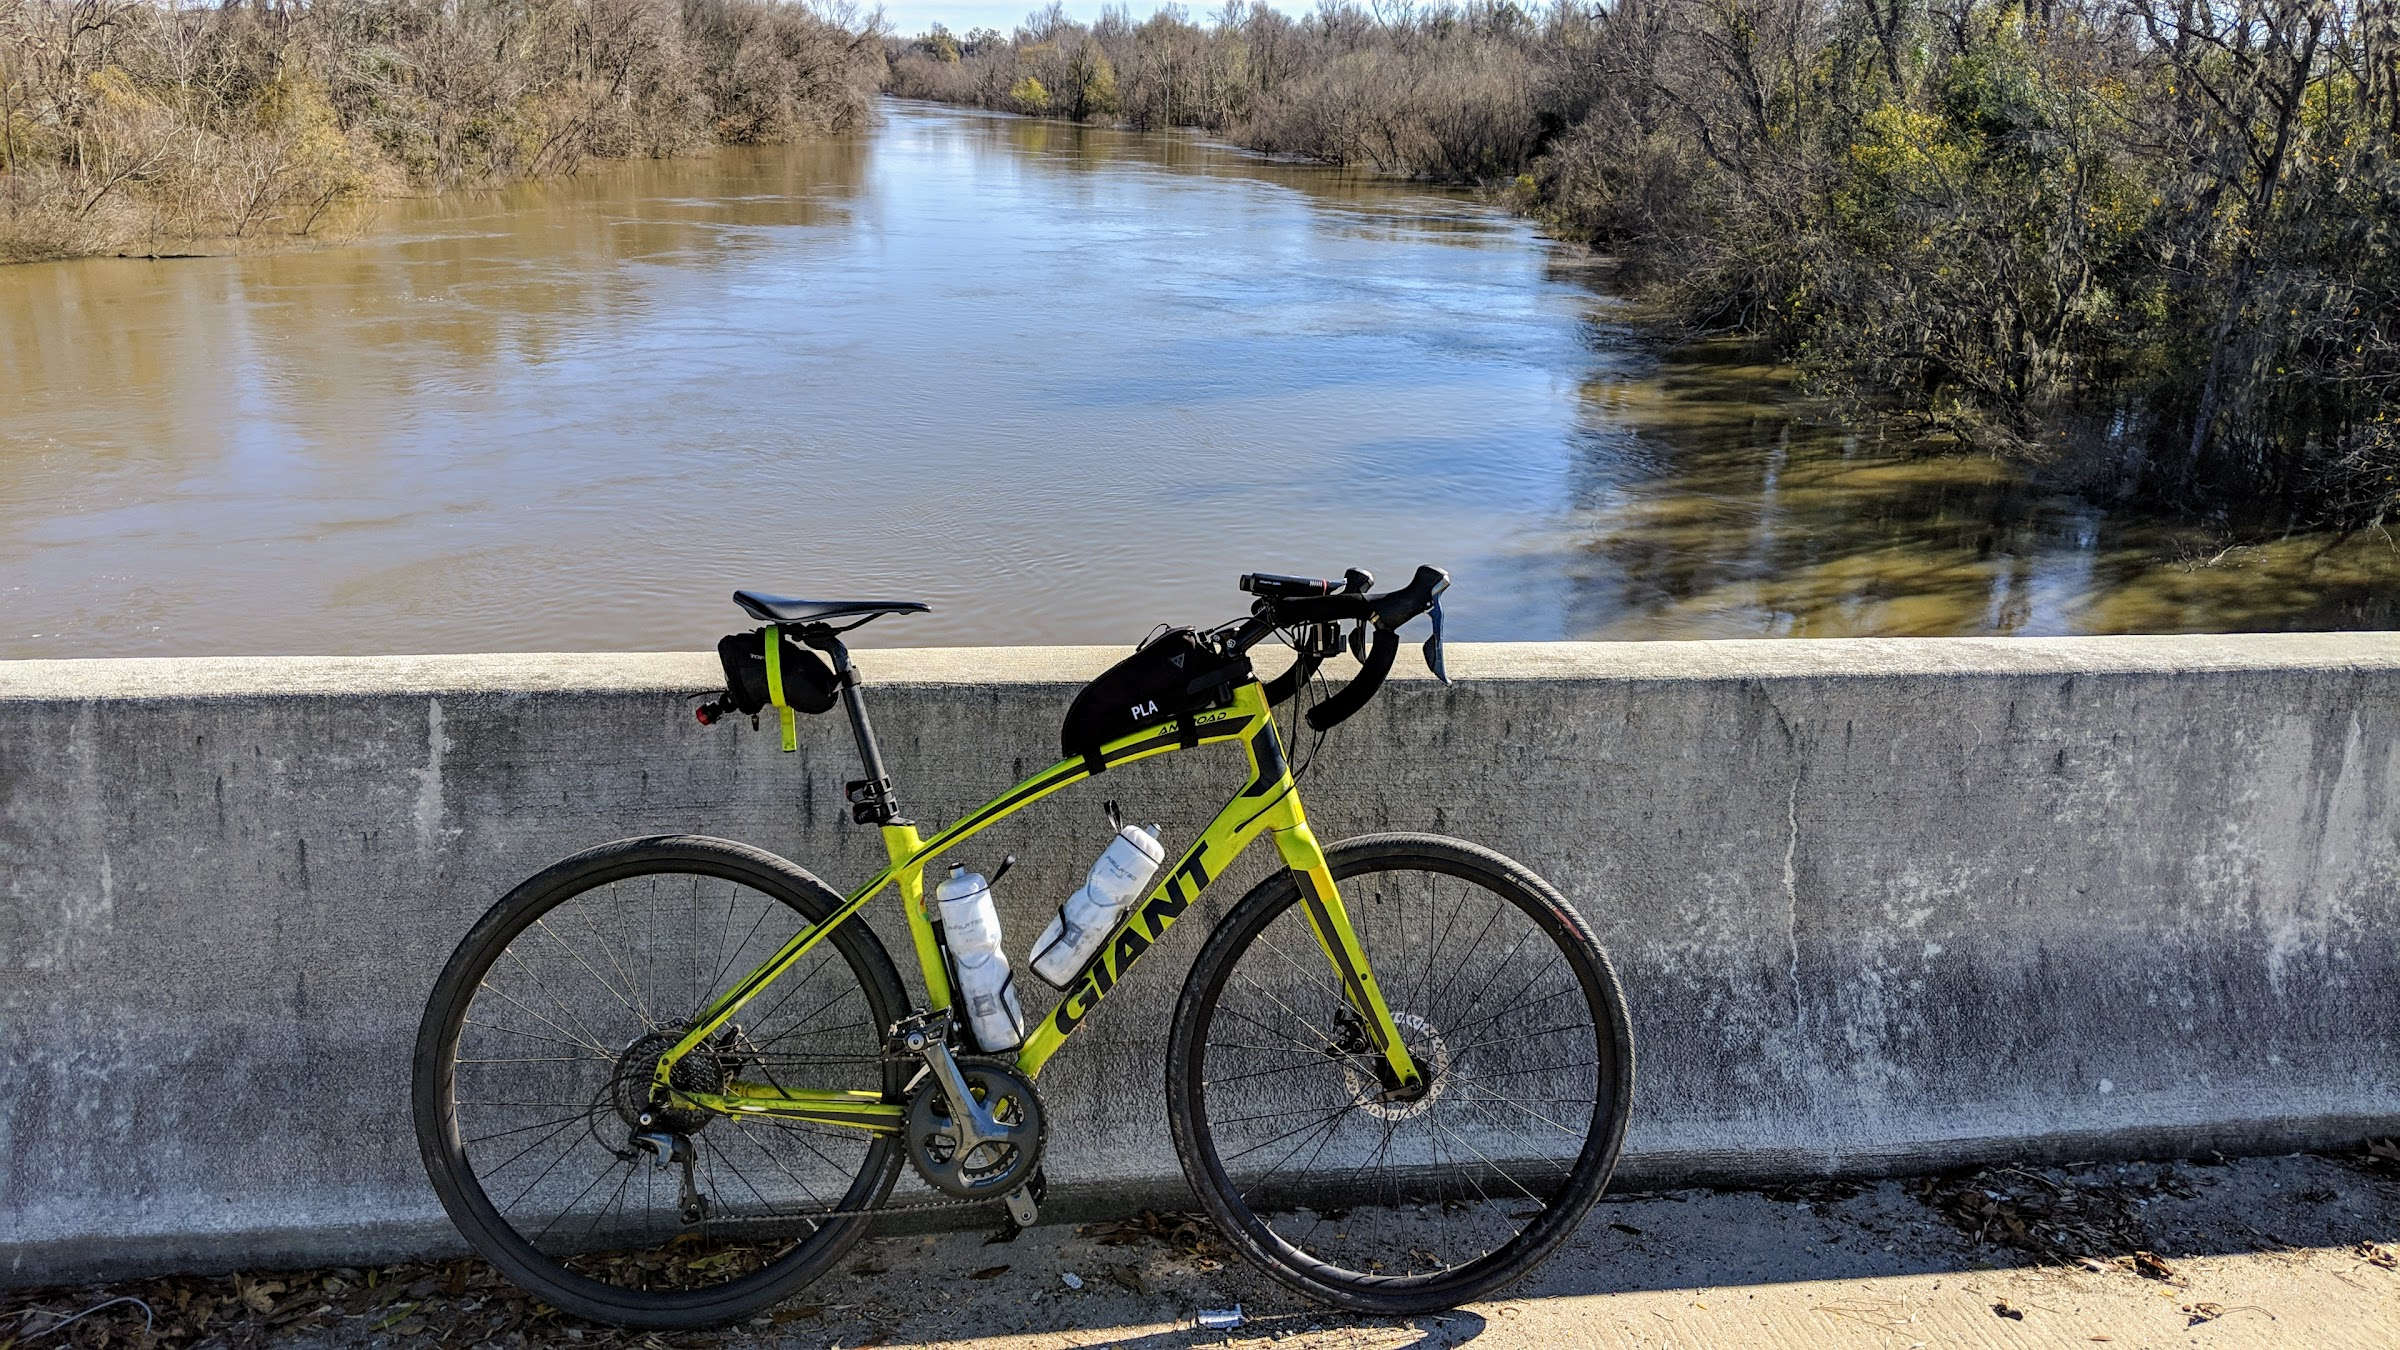 Bike on Santee River bridge